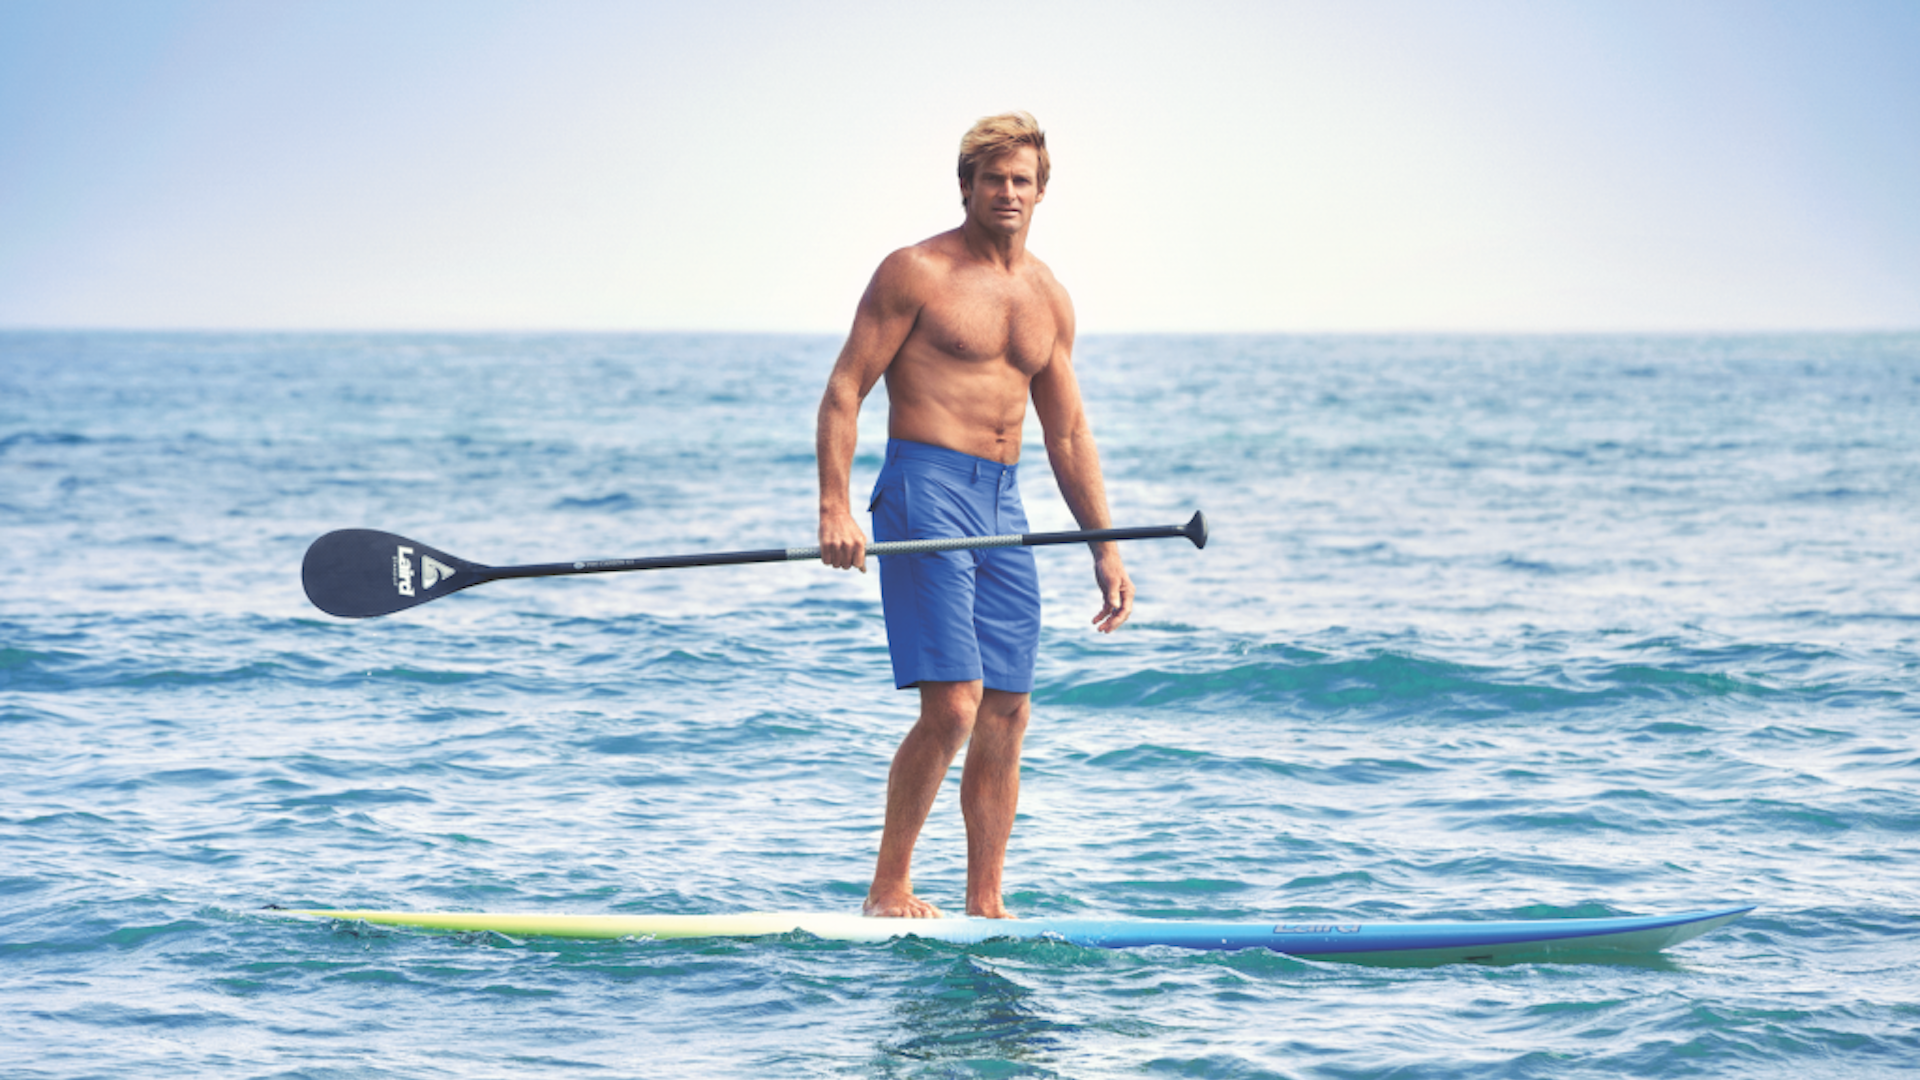 Laird Hamilton - Big Wave Surfer: The Man Who Changed The Sport Forever